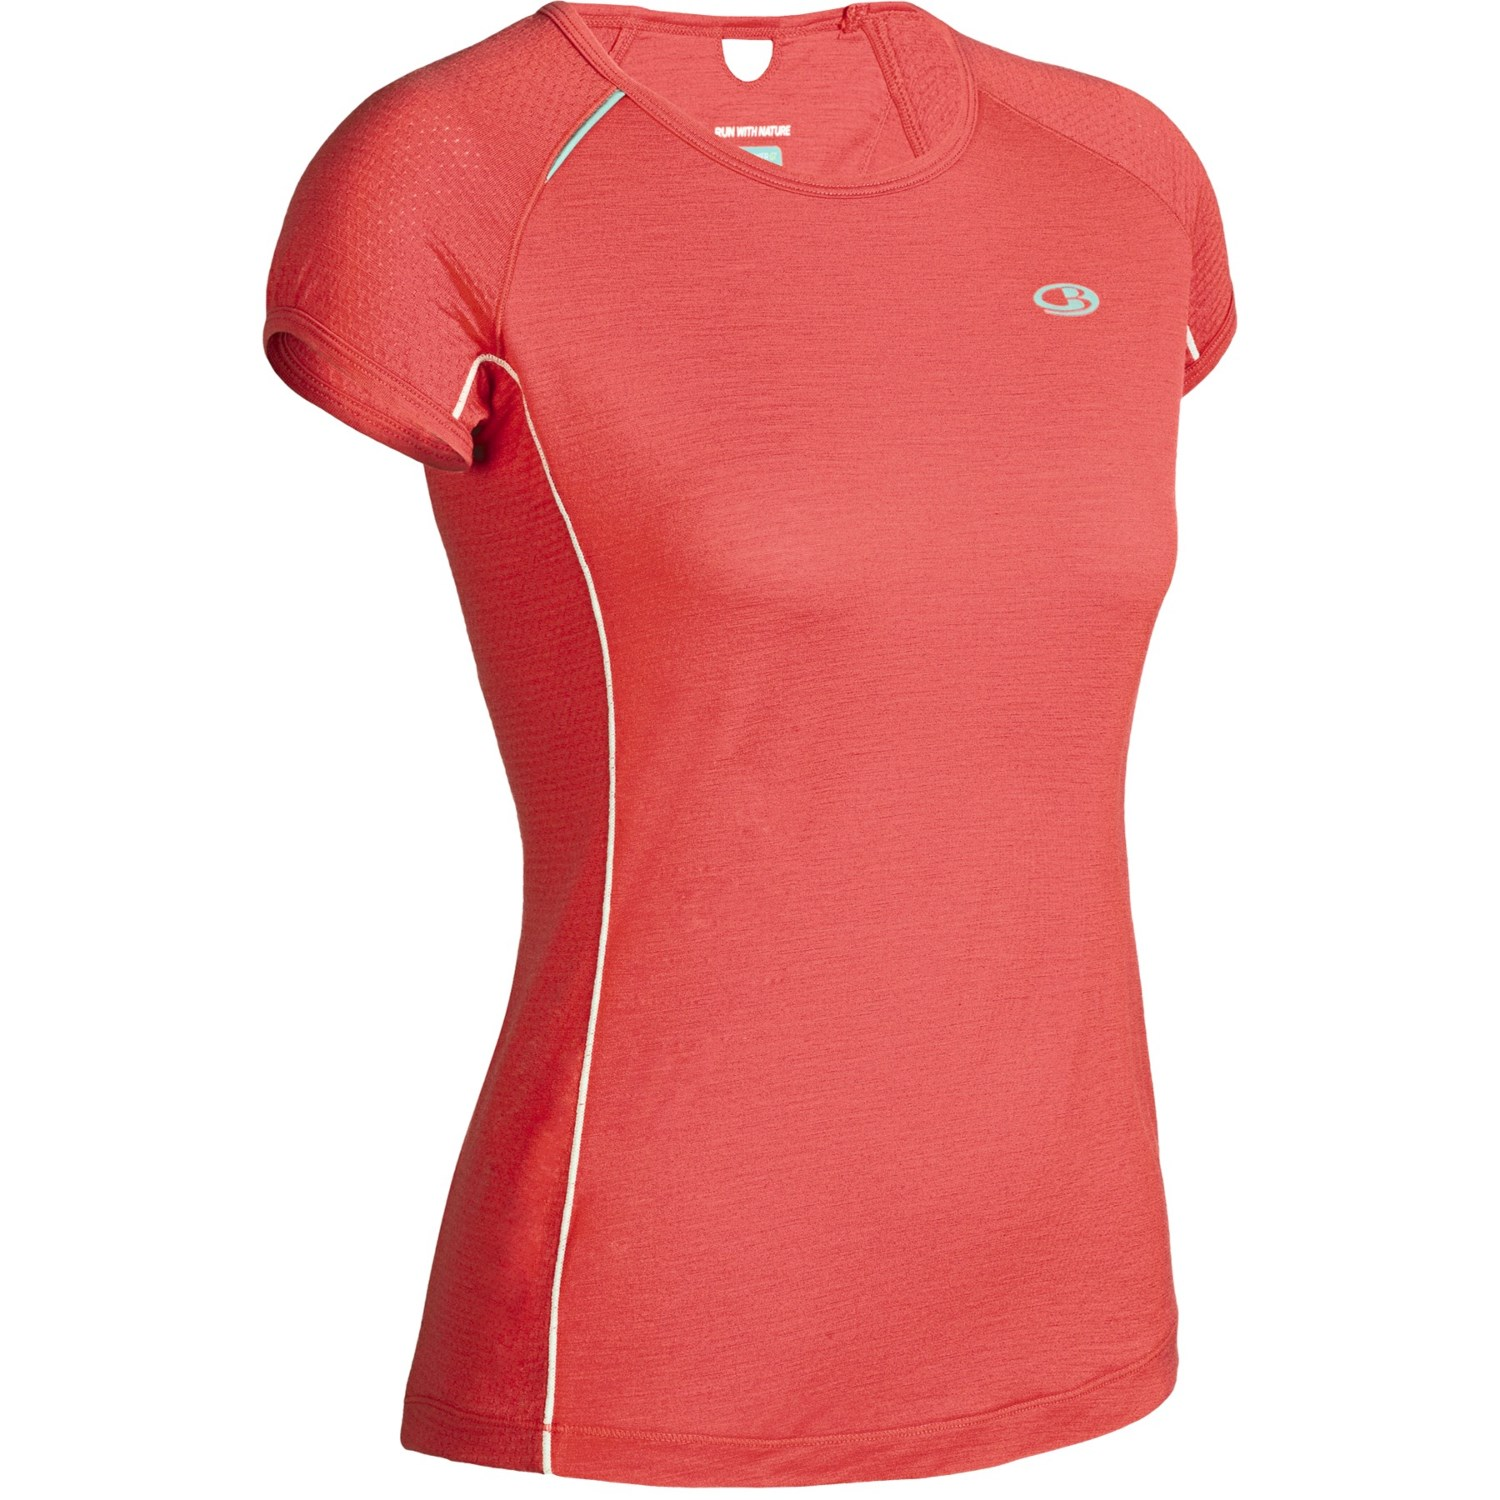 Icebreaker gt run rush shirt merino wool short sleeve for Merino wool shirt womens